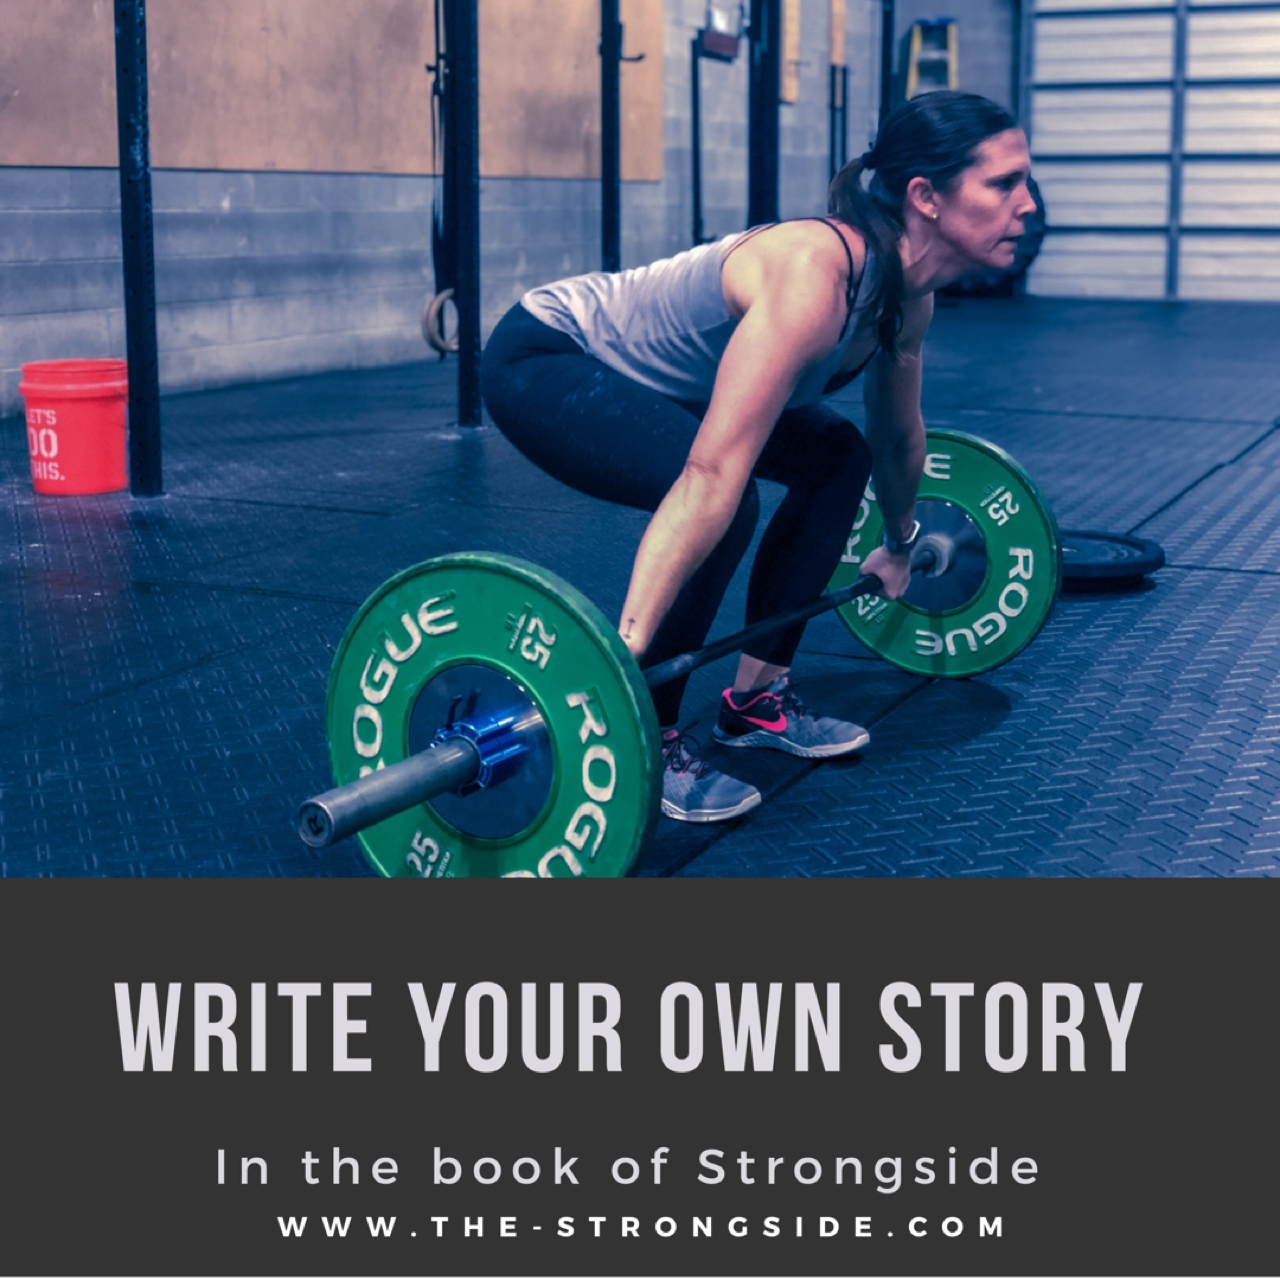 Strongside Barbell: April 15th – 20th 2019